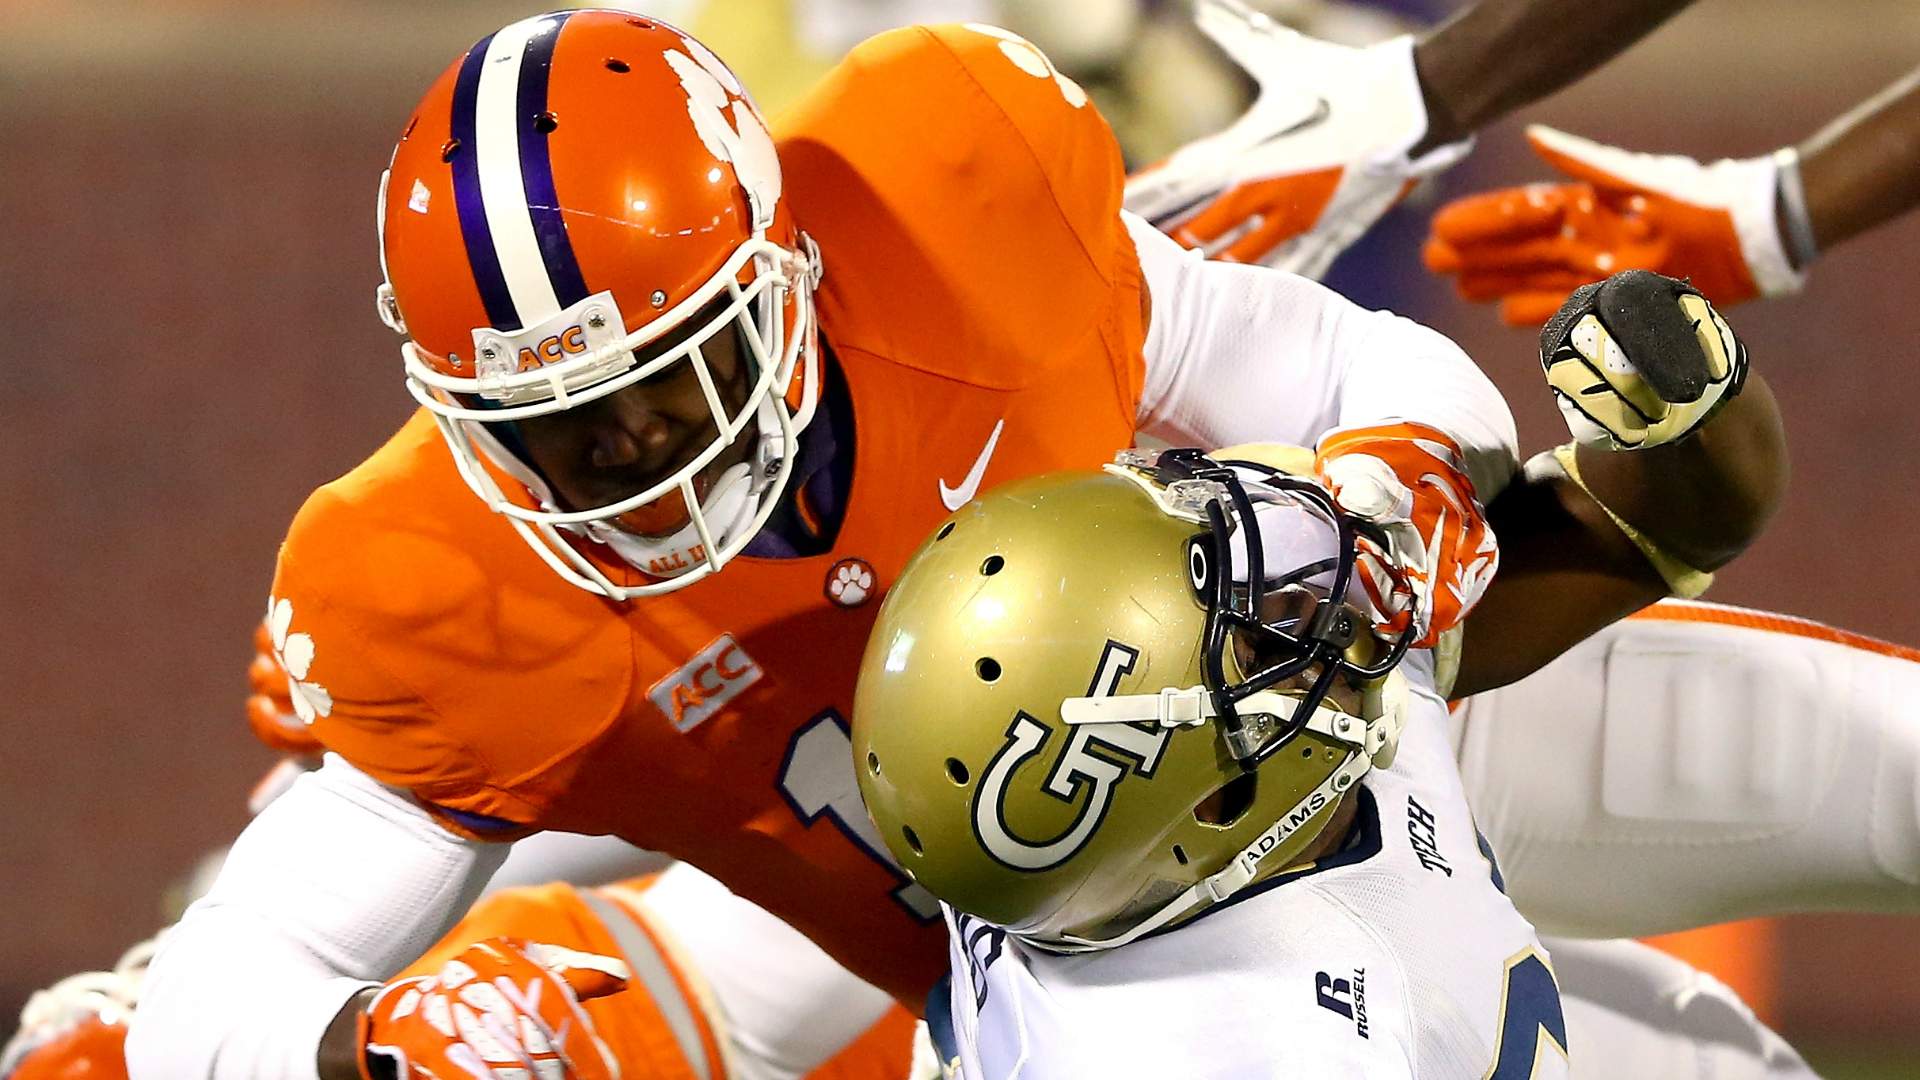 'Moped scuffle' sidelines Clemson safety